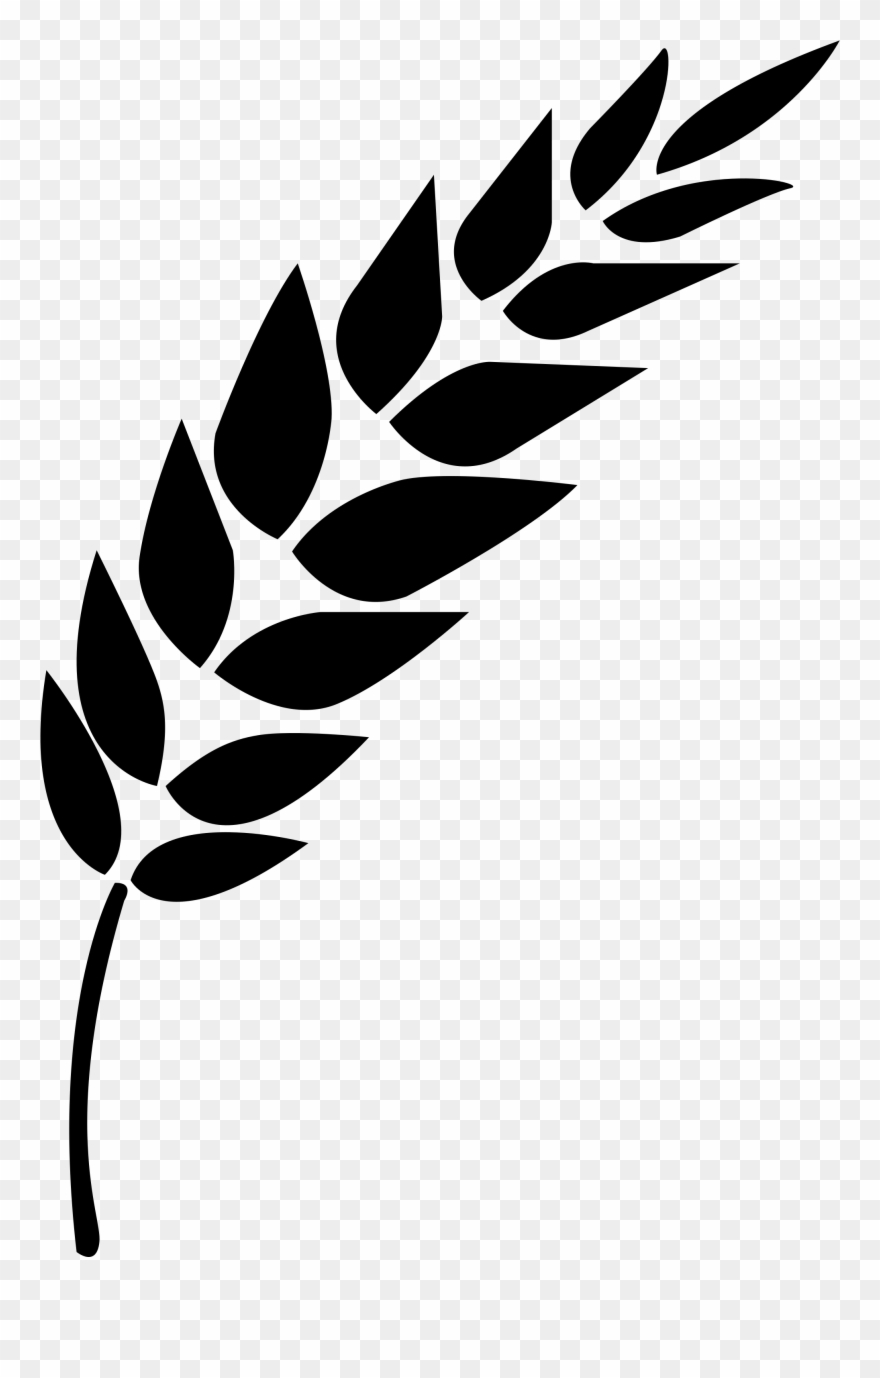 Wheat Vector - Black And White Wheat Stalk Clipart ...